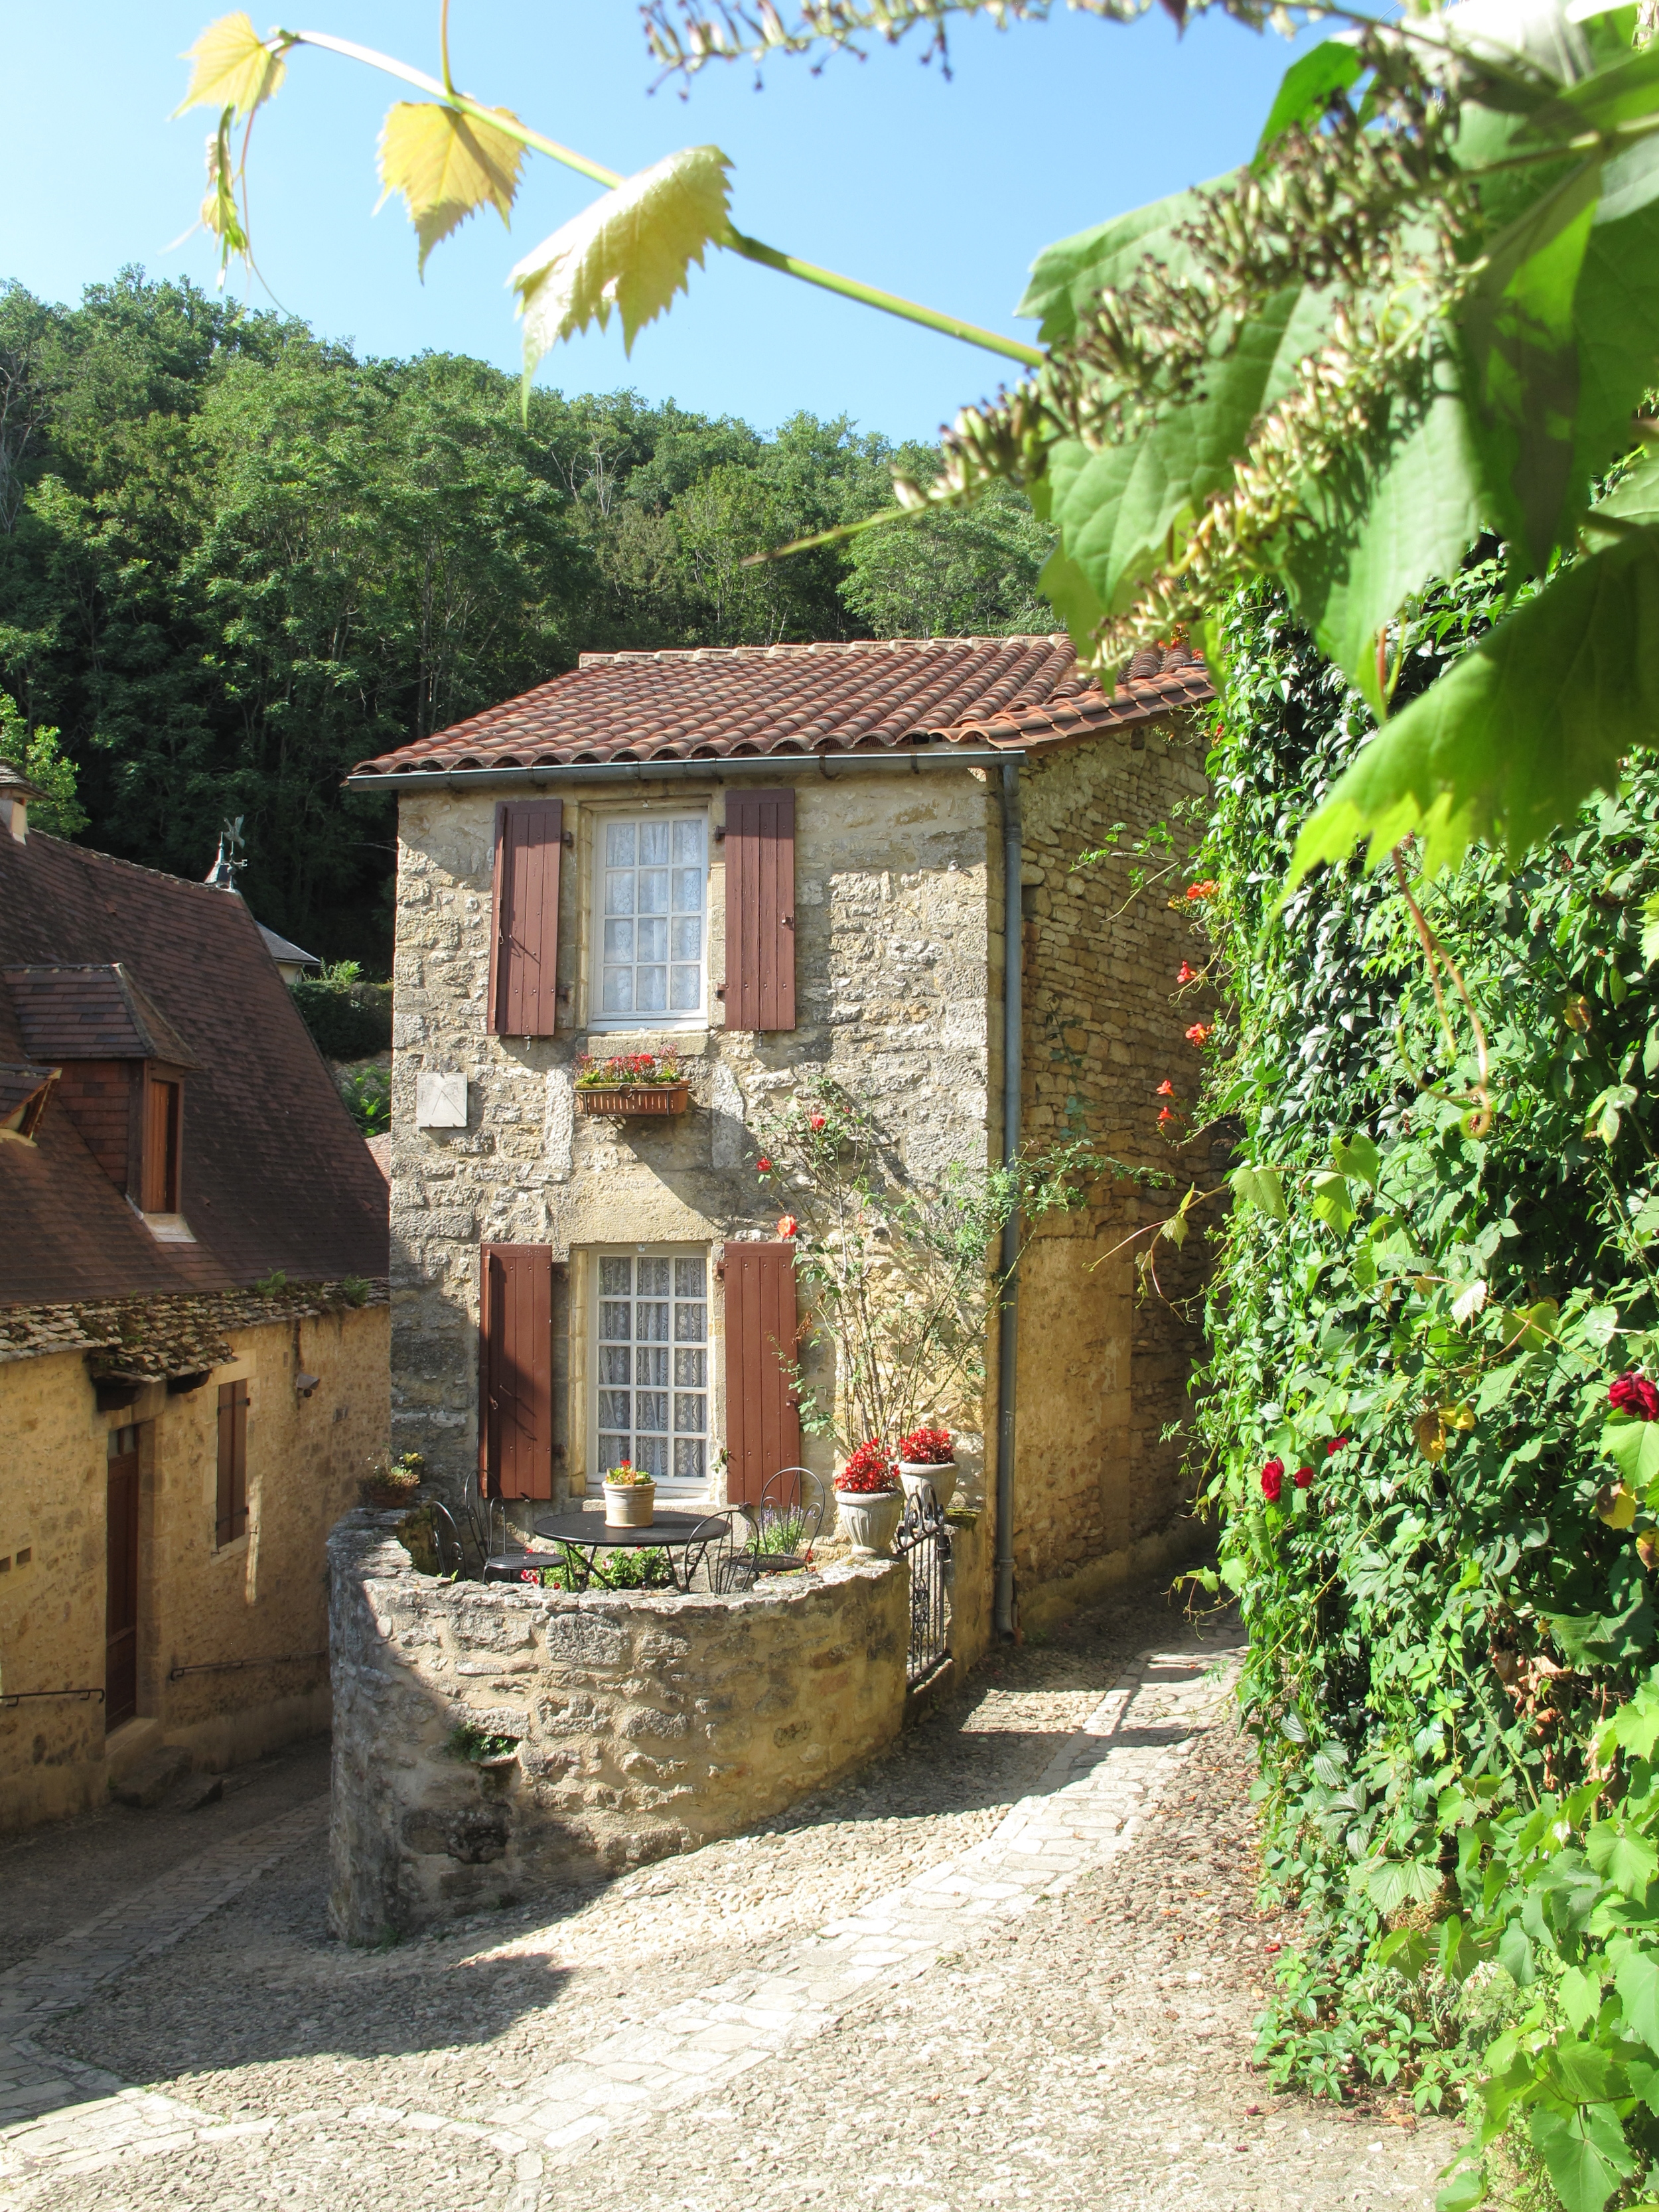 Les Eyzies beautiful medieval villages on a hill in France - stone houses, narrow lanes and roses